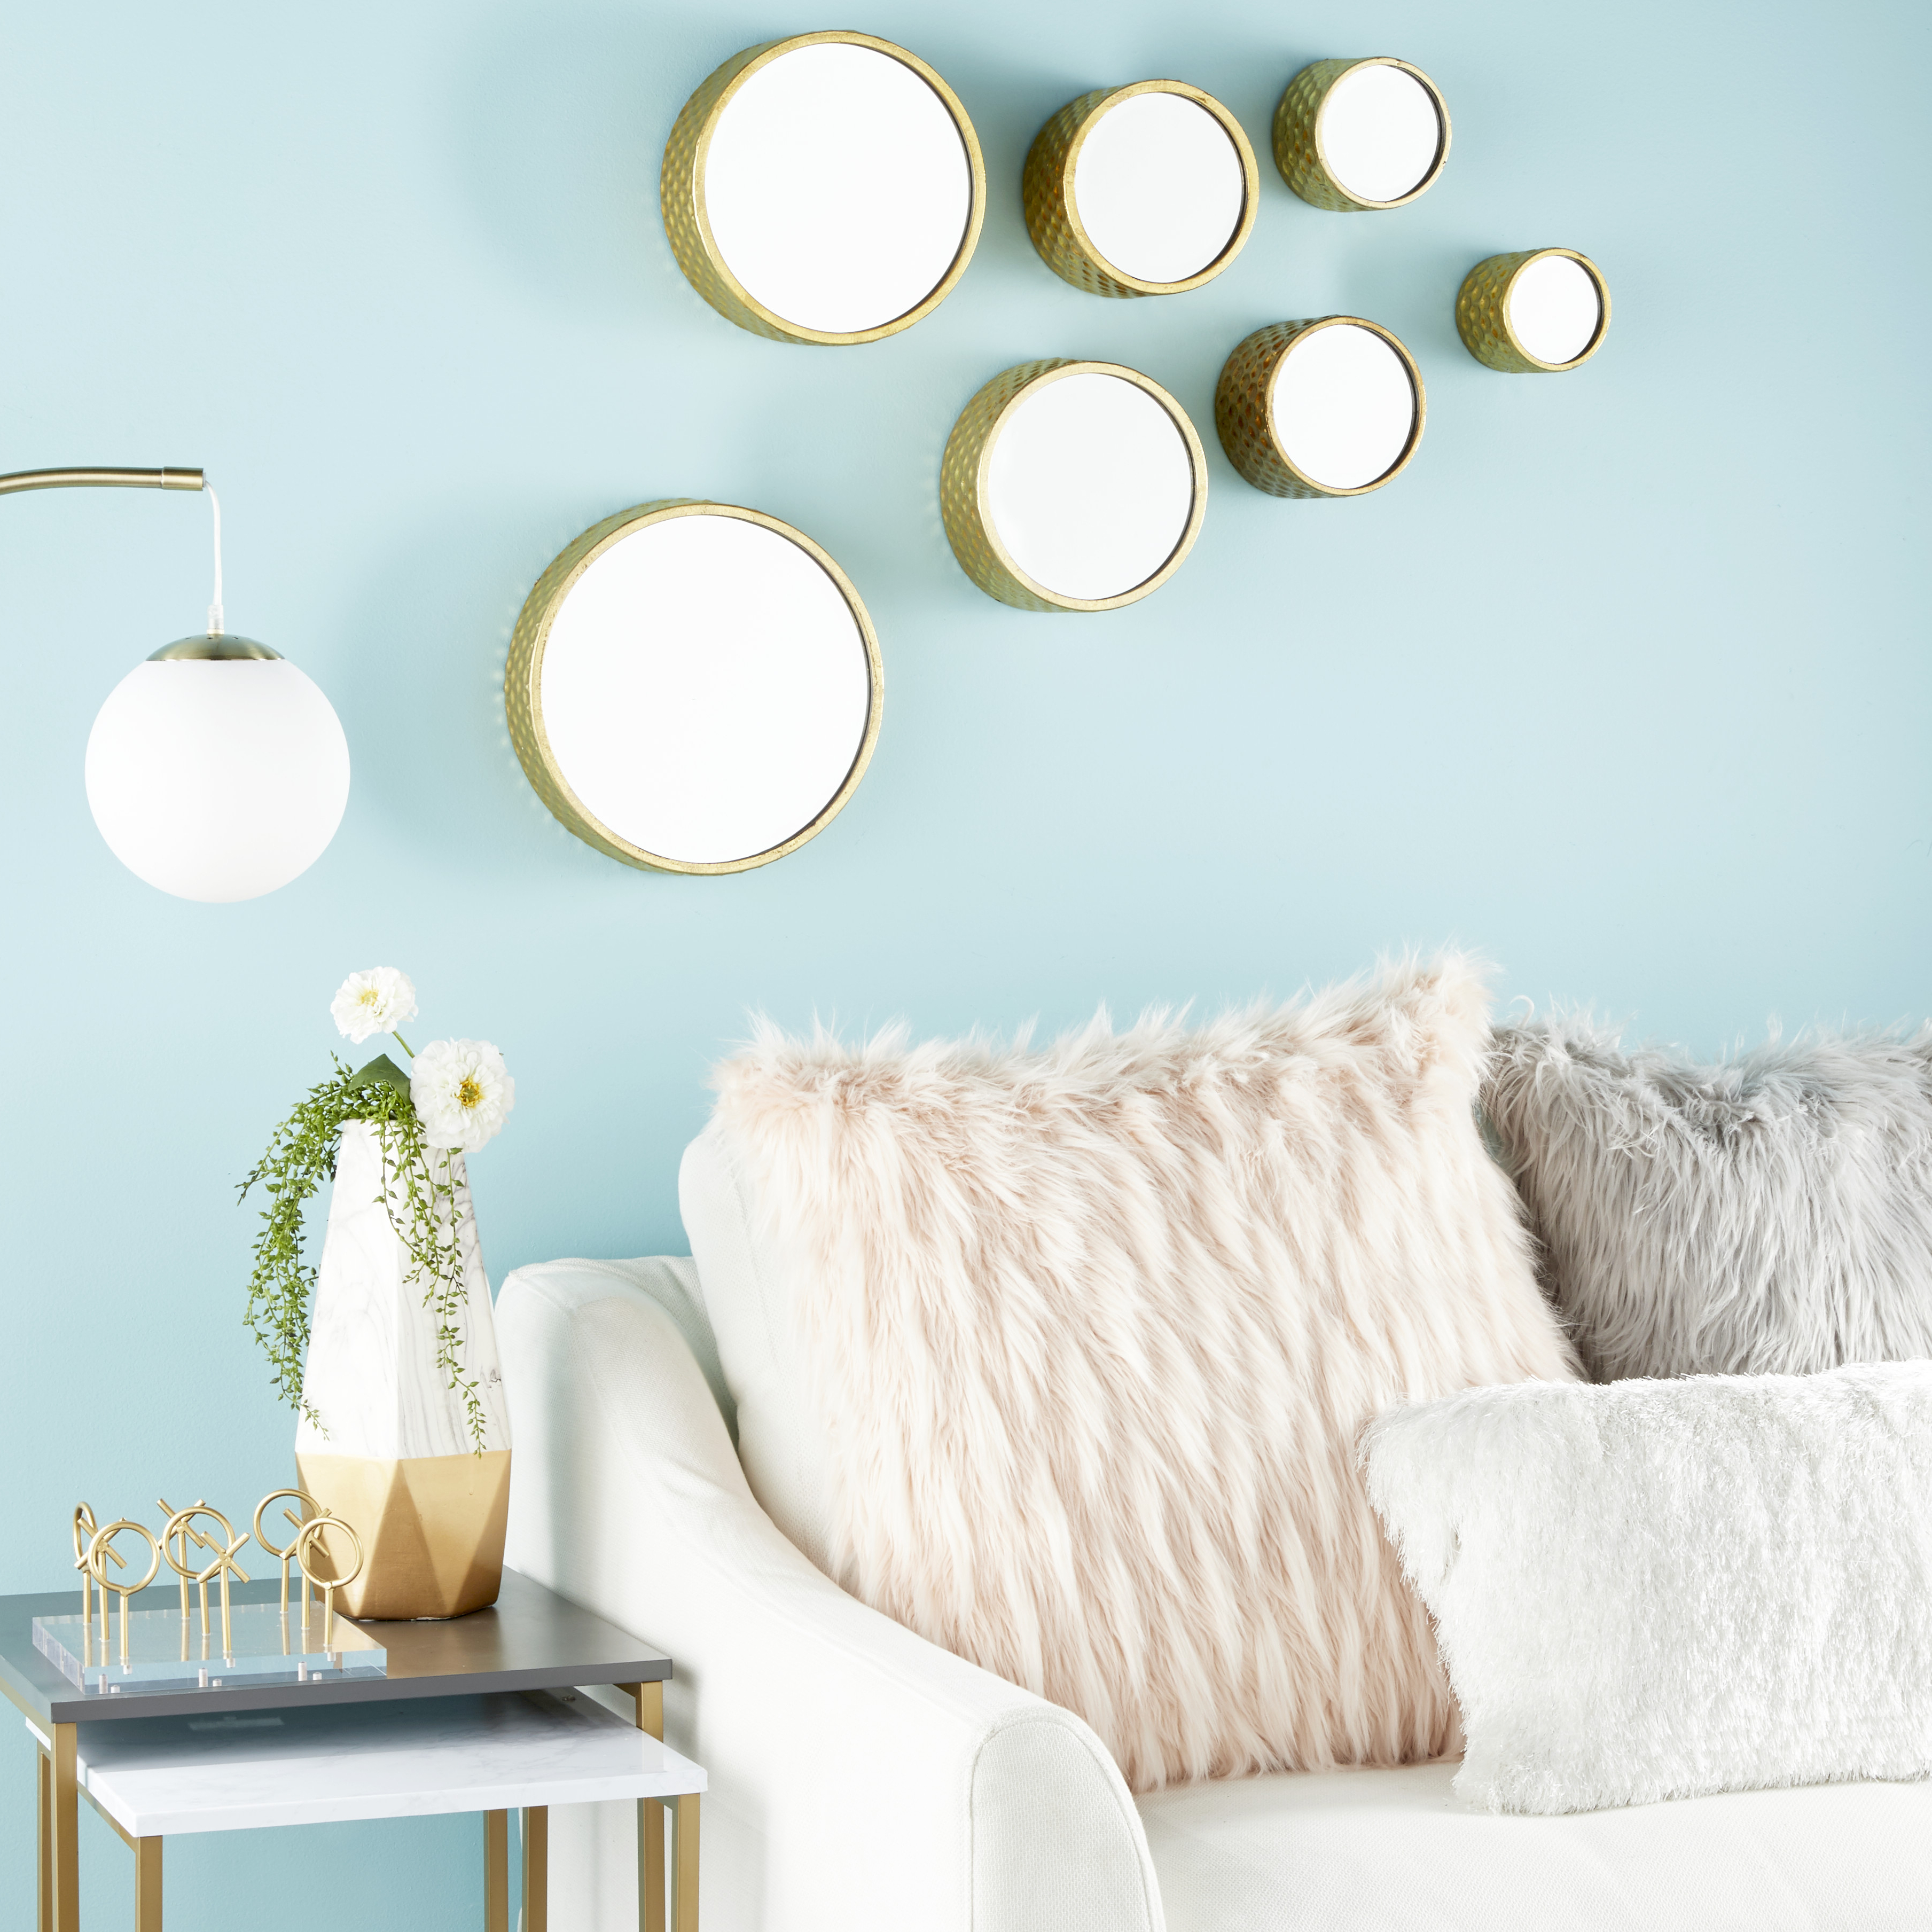 Cosmoliving Small, Round Metallic Gold Hammered Metal Decorative Wall Mirrors (View 16 of 20)